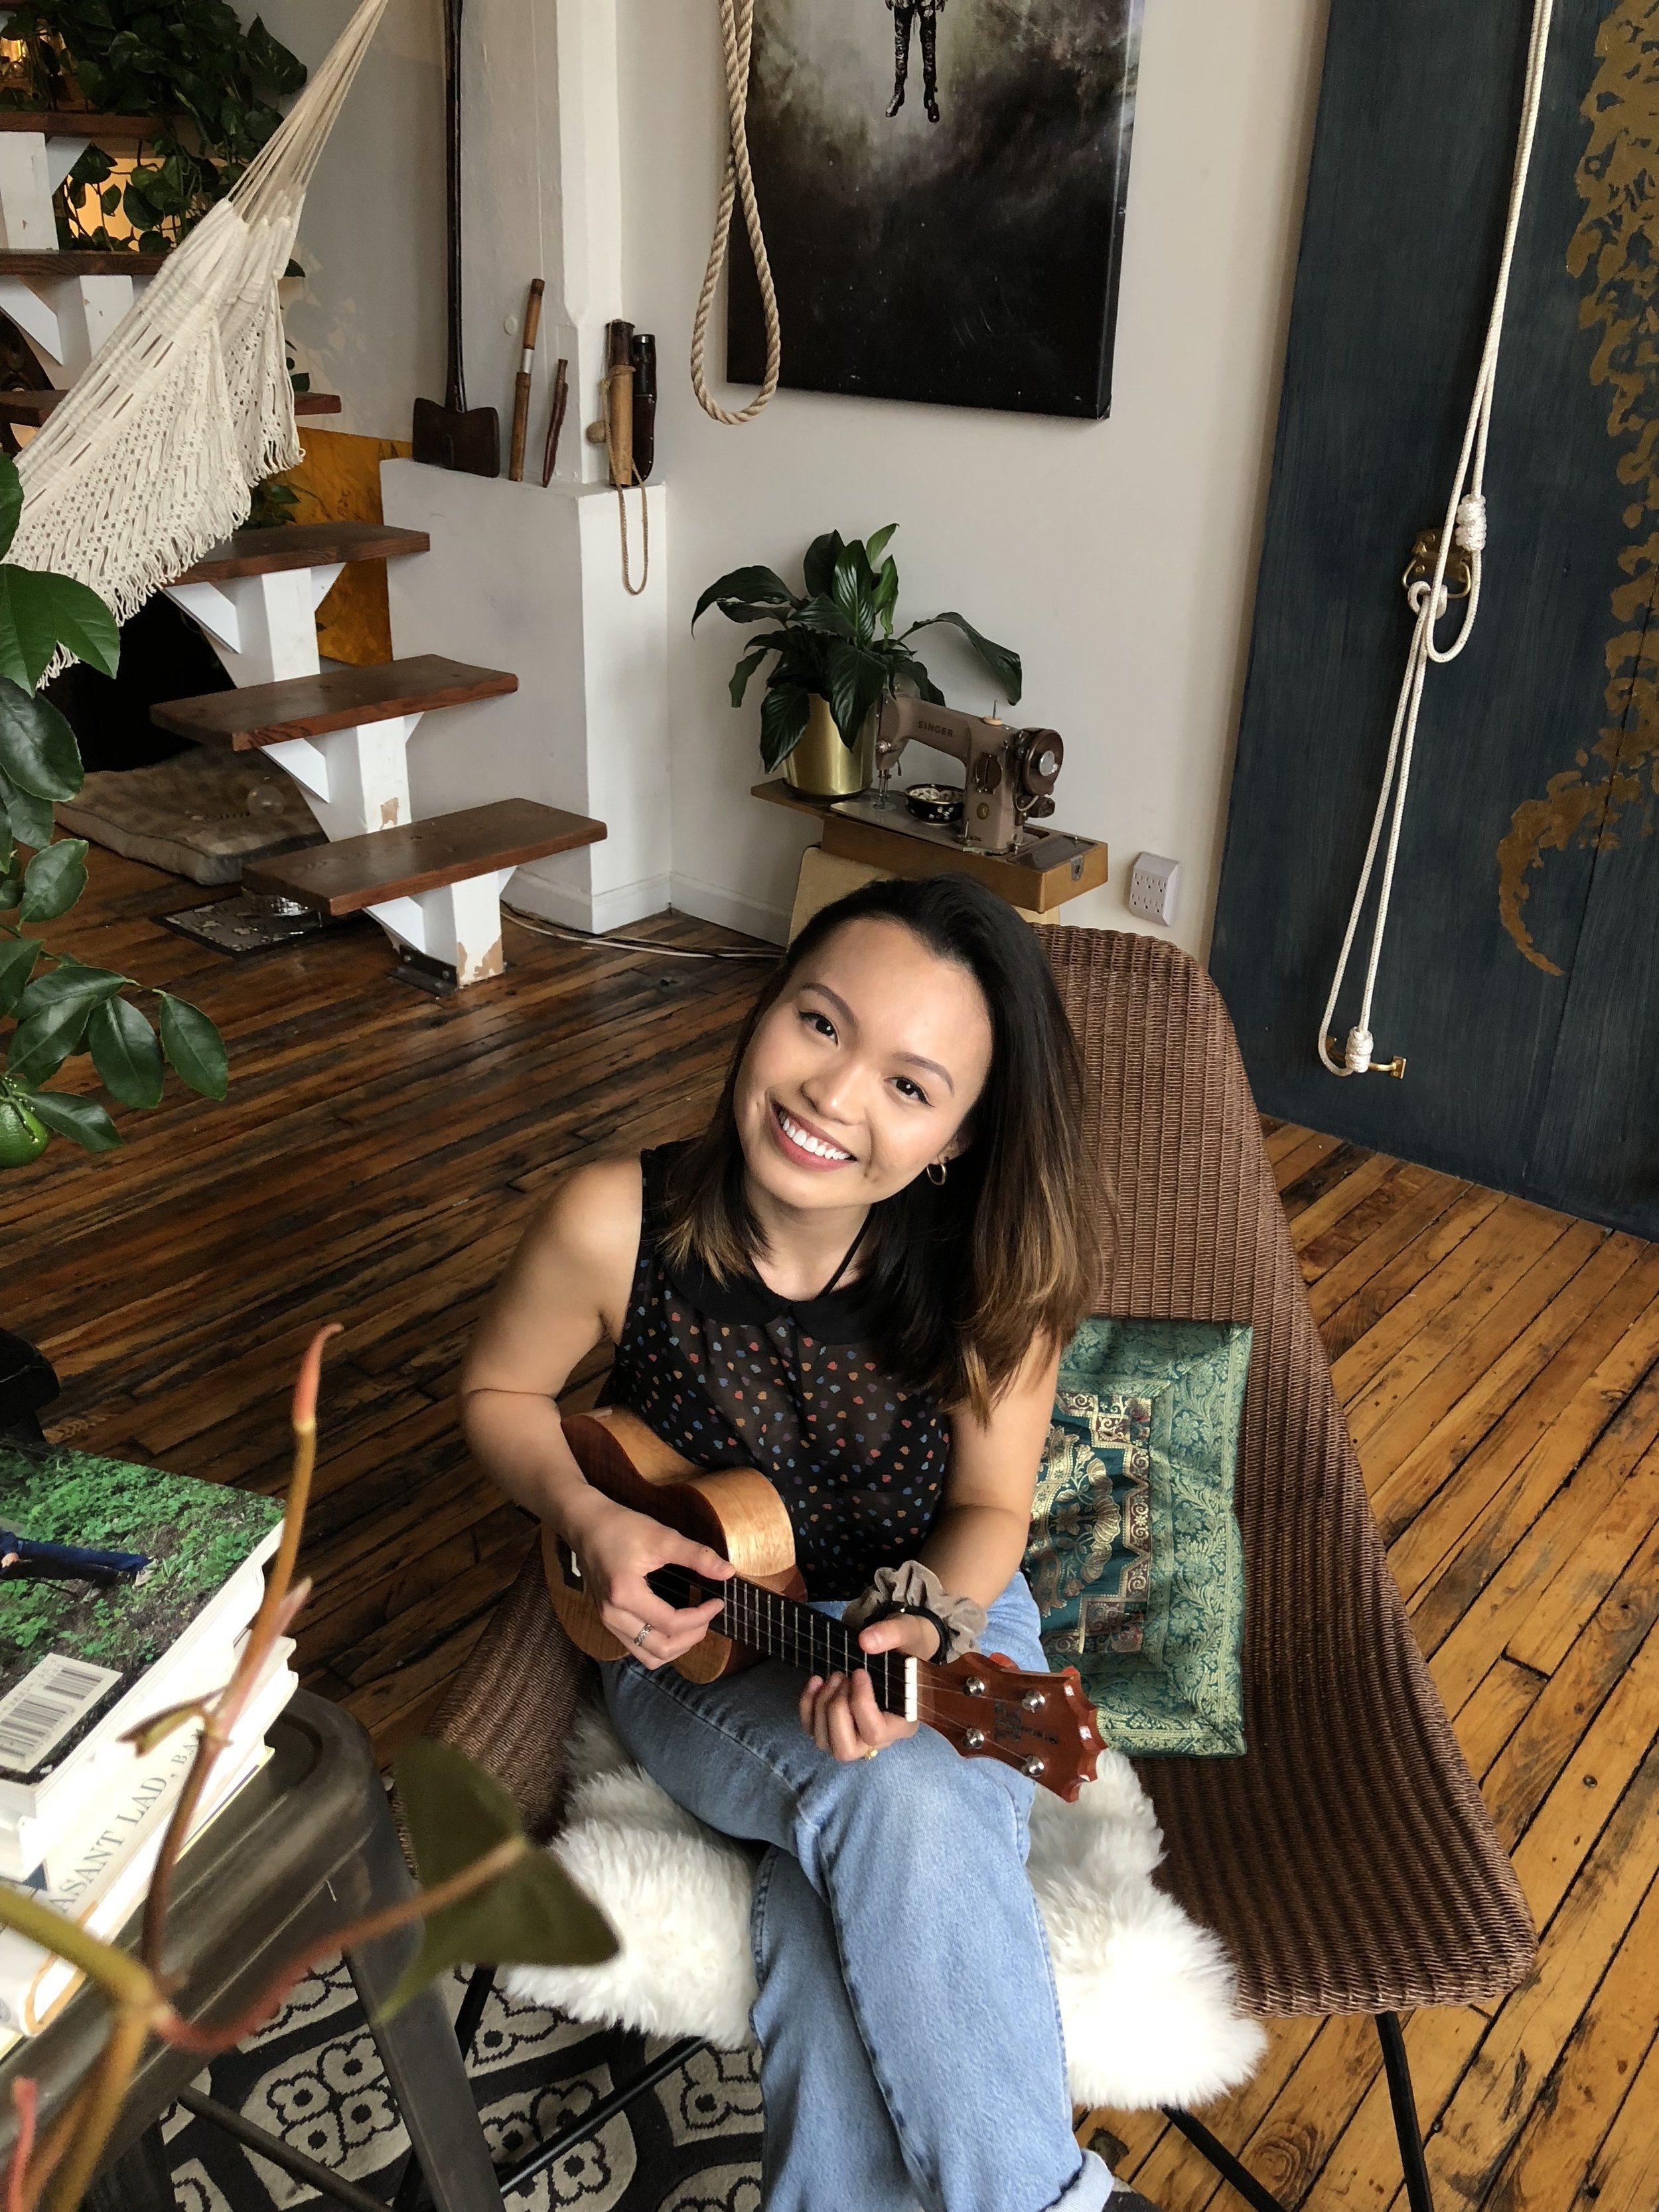 """Nix, 22 - You might not expect an acoustic cover of Nicki Minaj's """"Super Bass"""" to go viral, but that's exactly what happened to Nix. The YouTube singer's take on the rap/pop hit has garnered nearly 10 million views since it was posted in 2012. She has also put out ukulele covers of songs from diverse genres, such as a Wiz Khalifa track, and more recently, the Chinese classic """"The Moon Represents My Heart."""" Talking to NBC News for Asian Pacific American Heritage Month, the Malaysia native says when she first moved back to New York City as a teen, she barely spoke English and lived in a tiny apartment with her aunt. To cope with a lack of personal space and language proficiency, Nix turned to music as an escape. In college, she felt like an outsider among a campus of white and upper-middle-class students, and now she says she is lucky to travel around the country and perform for AAPI and Asian students. """"I love seeing someone like me/my younger self, a Southeast Asian woman, in my audience,"""" Nix said to NBC News. """"In sharing my story through my music, [these students] give me a glimpse of theirs in return. It's a really magical feeling when someone tells you you're the reason they started playing the ukulele. All these things keep me motivated."""" — R.Y.Image Courtesy of Nix"""